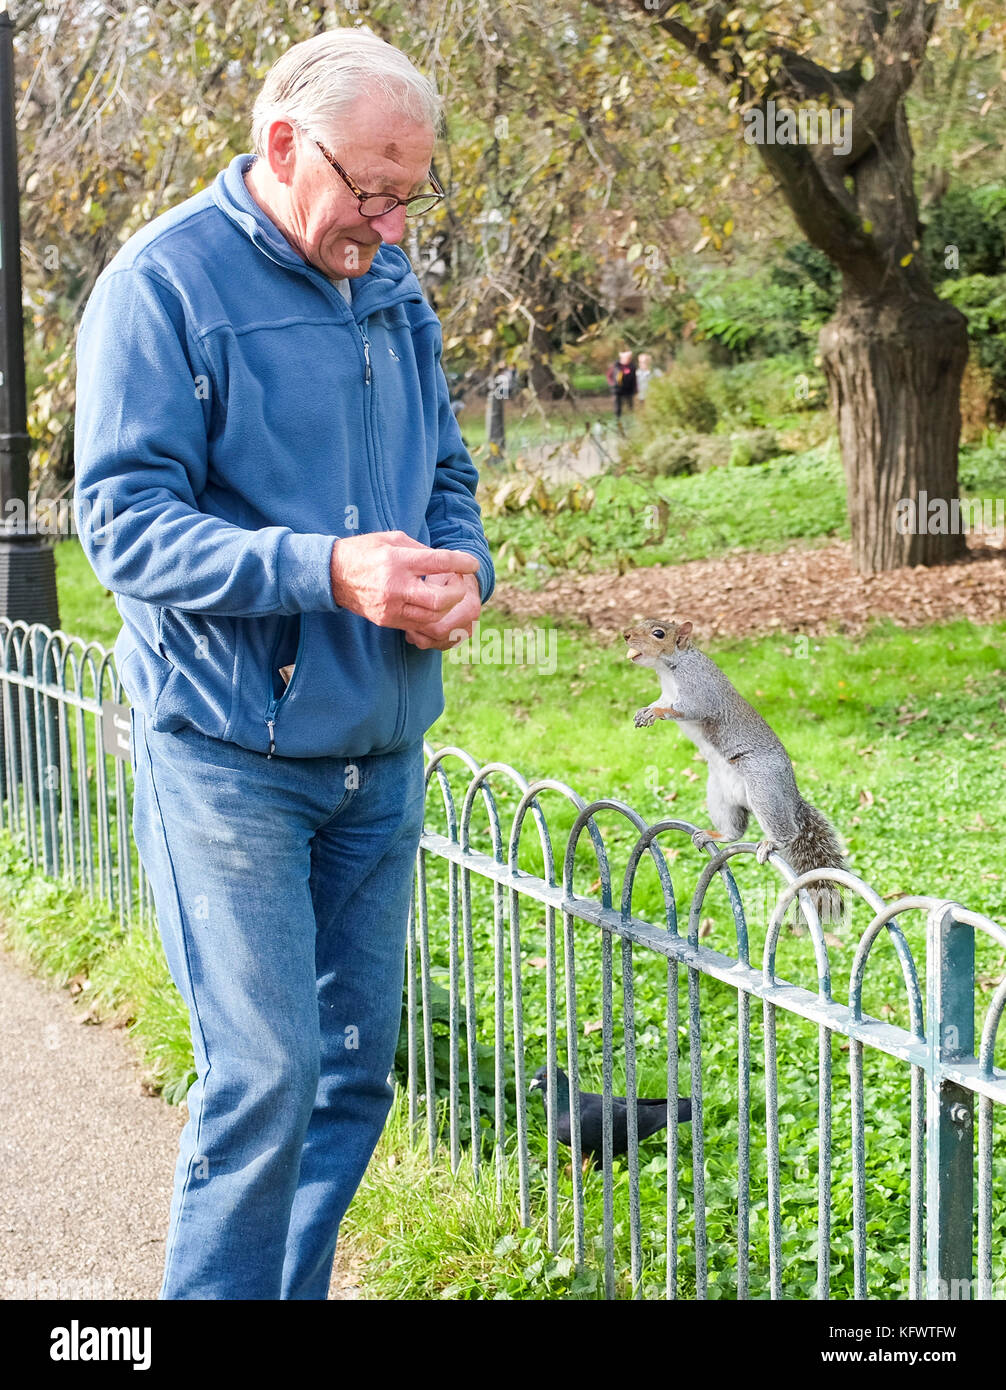 Brighton, UK. 1st November, 2017. A cheeky grey squirrel enjoys a free hand fed meal in Pavilion Gardens Brighton - Stock Image